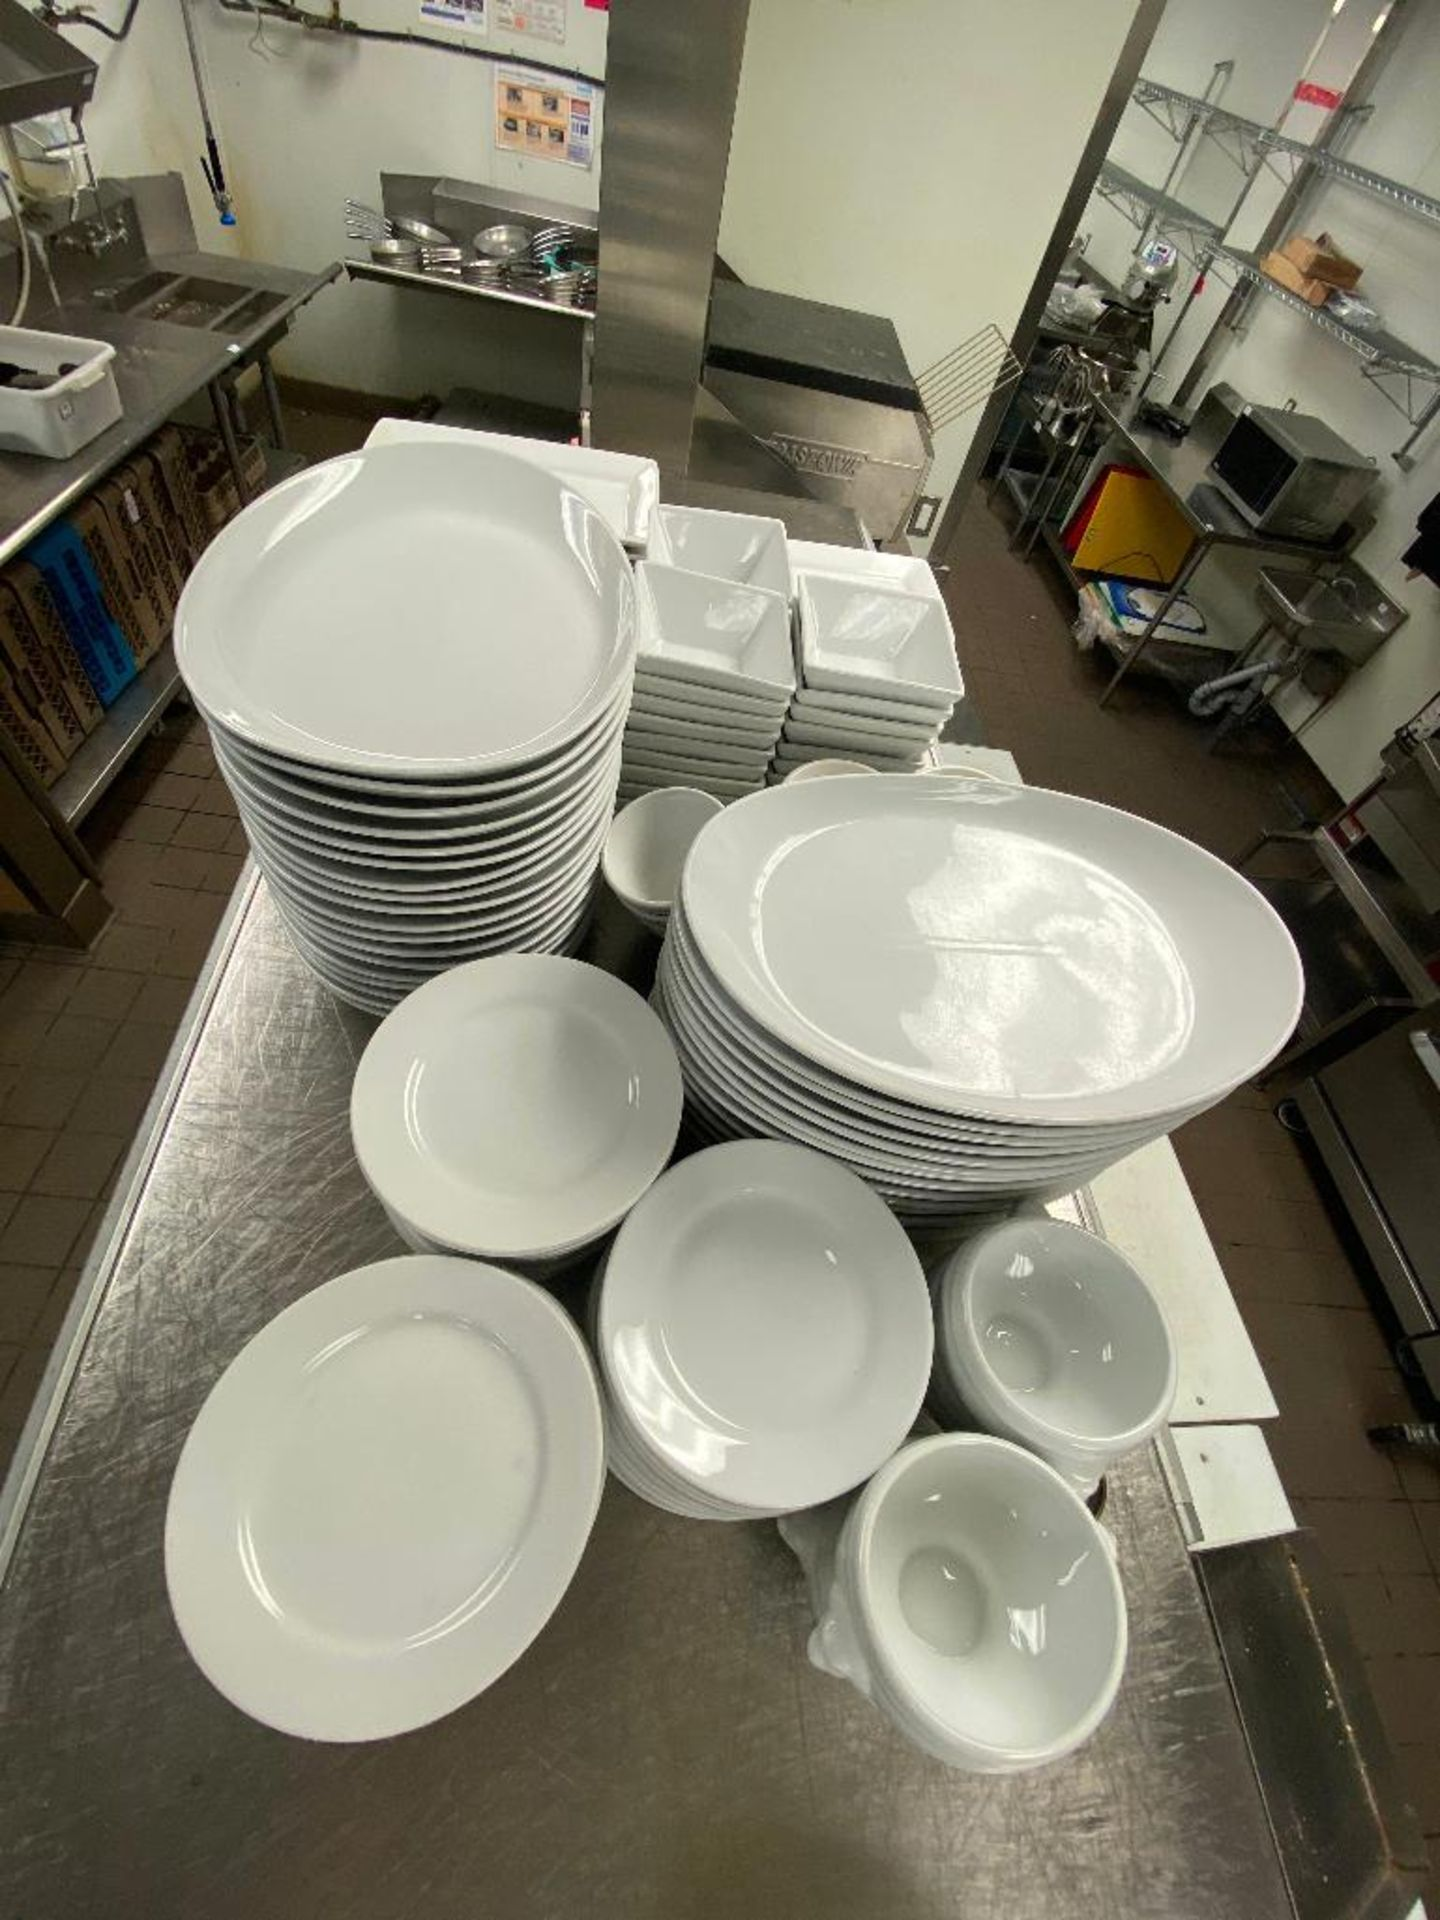 LOT OF ASSORTED DINNERWARE INCLUDING: PLATES, BOWLS, SOUP BOWLS - Image 2 of 3